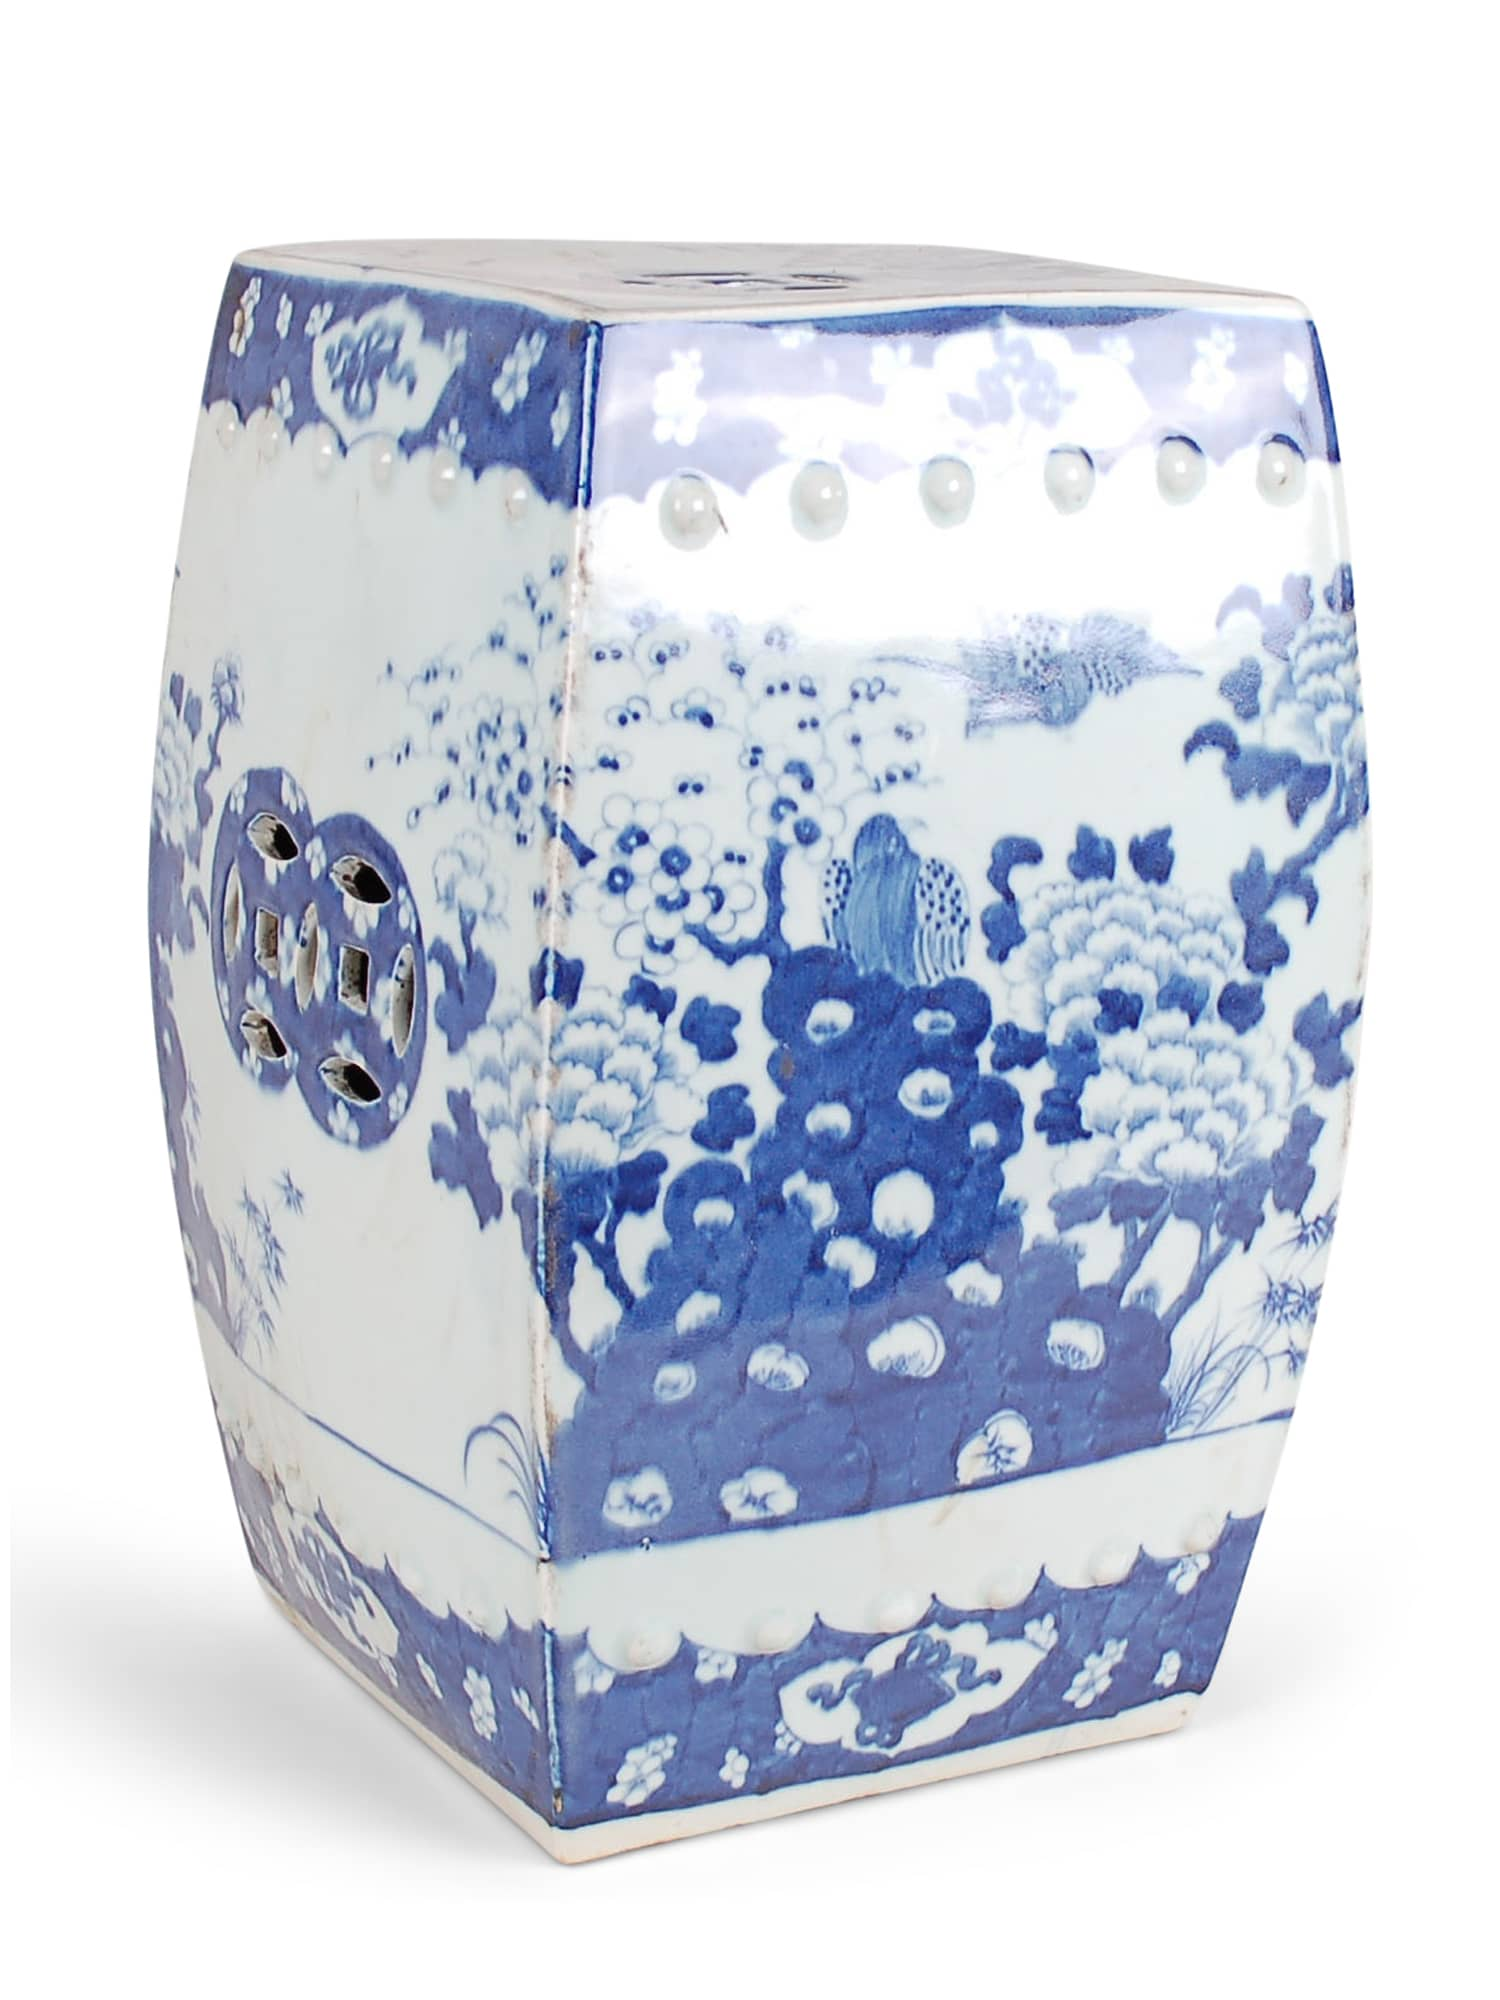 Blue and White Square Garden Stool - Amy Berry Home